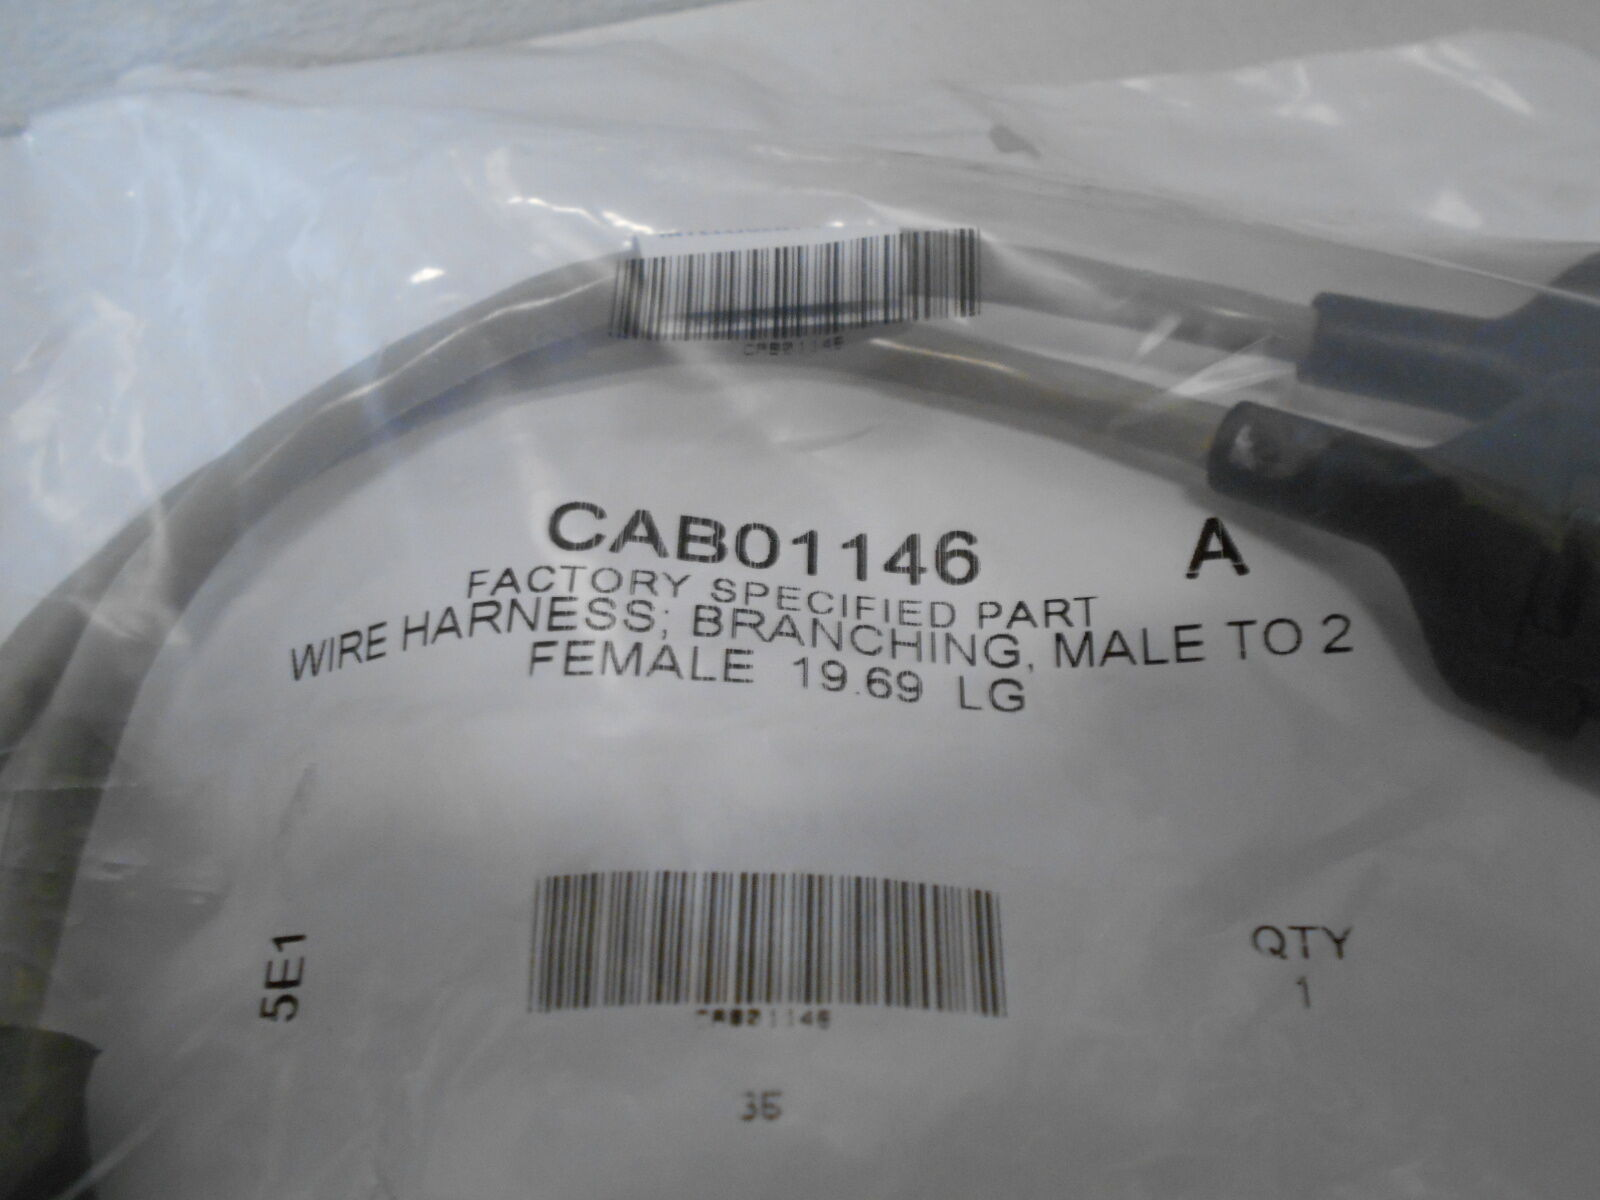 CAB01146 Wire Harness Cable nching Male To 2 Female 19.69 LG on